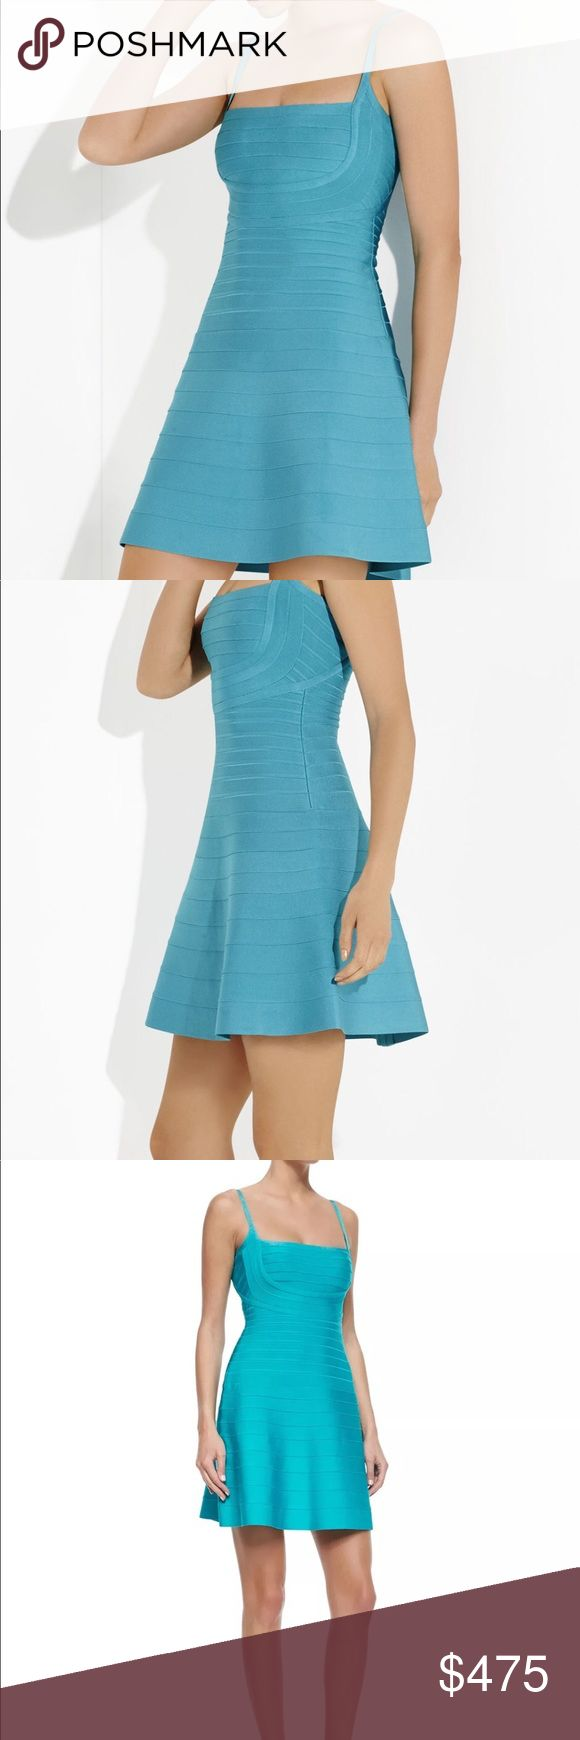 NWT Authentic Herve Leger Dress, Turquoise, Small New With Tags HERVE LEGER -  Novia - Fit and Flare Bandage Dress  Size:  Small - 6 Square neckline Sleeveless Allover bandage construction Fitted through upper thigh Hits at mid-thigh Self: Rayon, Nylon, Spandex bandage Dry Clean Only  You'll be fitted to fete-ready perfection in this pretty spin on the signature bandage dress.  Better fit for a bigger chest.   ‼️Price is firm ‼️ ❌No trades❌ Herve Leger Dresses Mini